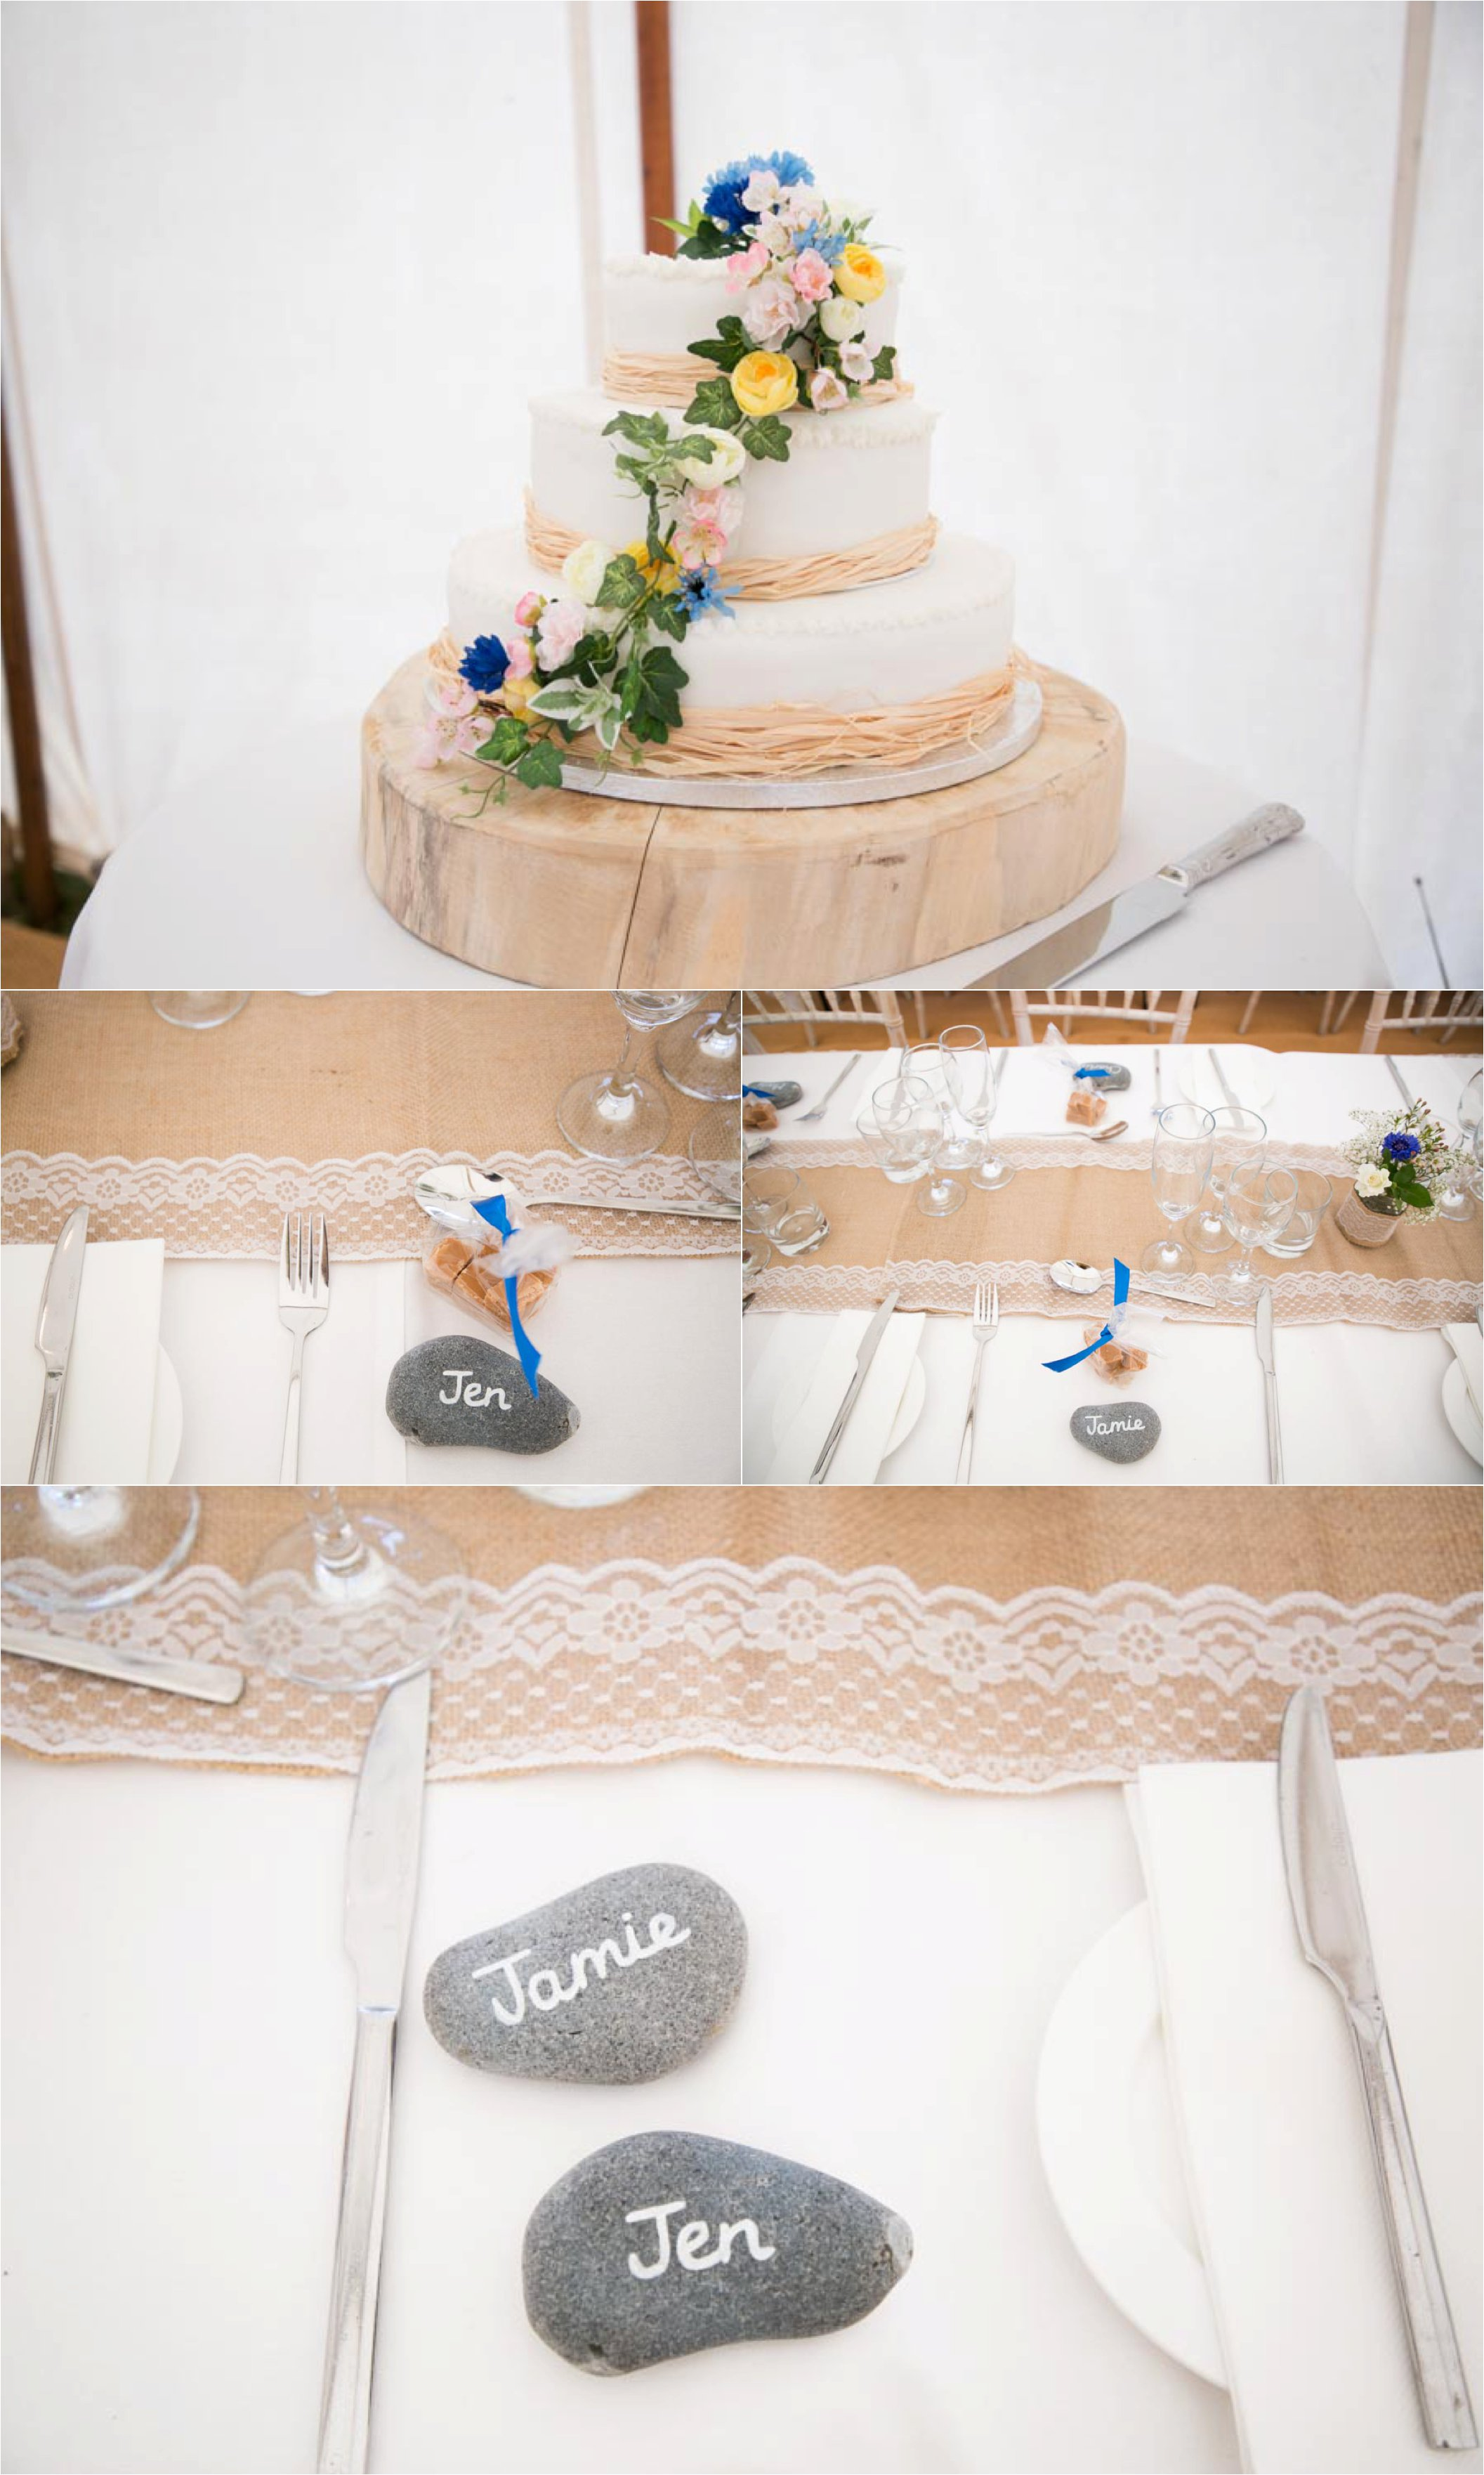 place names on stones and natural wedding cake, aldeburgh wedding photography